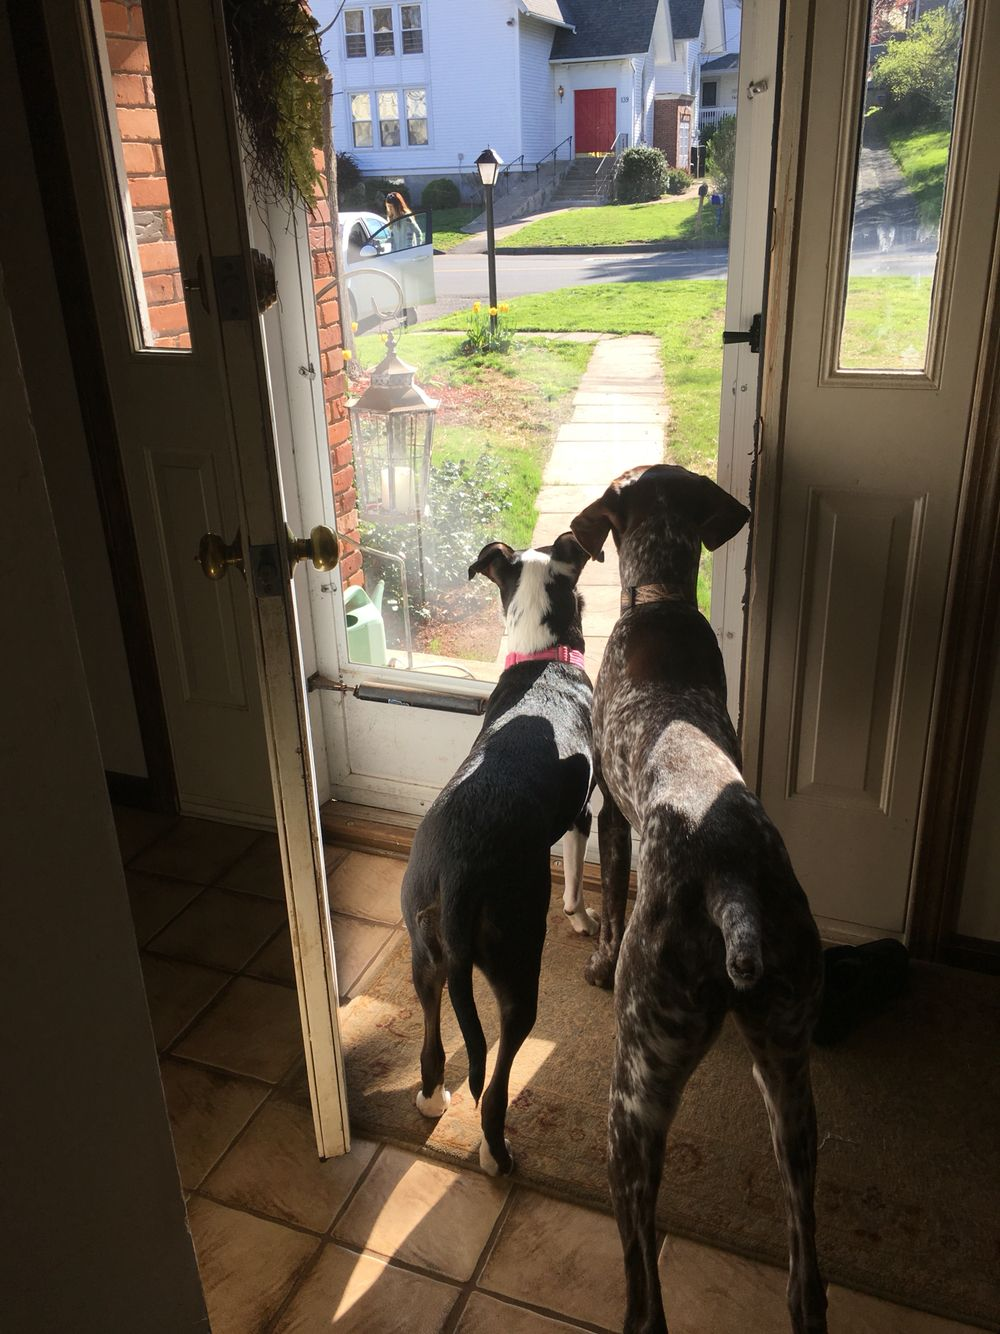 Puppy love, catahoula, catahoula cattle dog, catahoula leopard dog, southern dogs, gsp, German short haired pointer